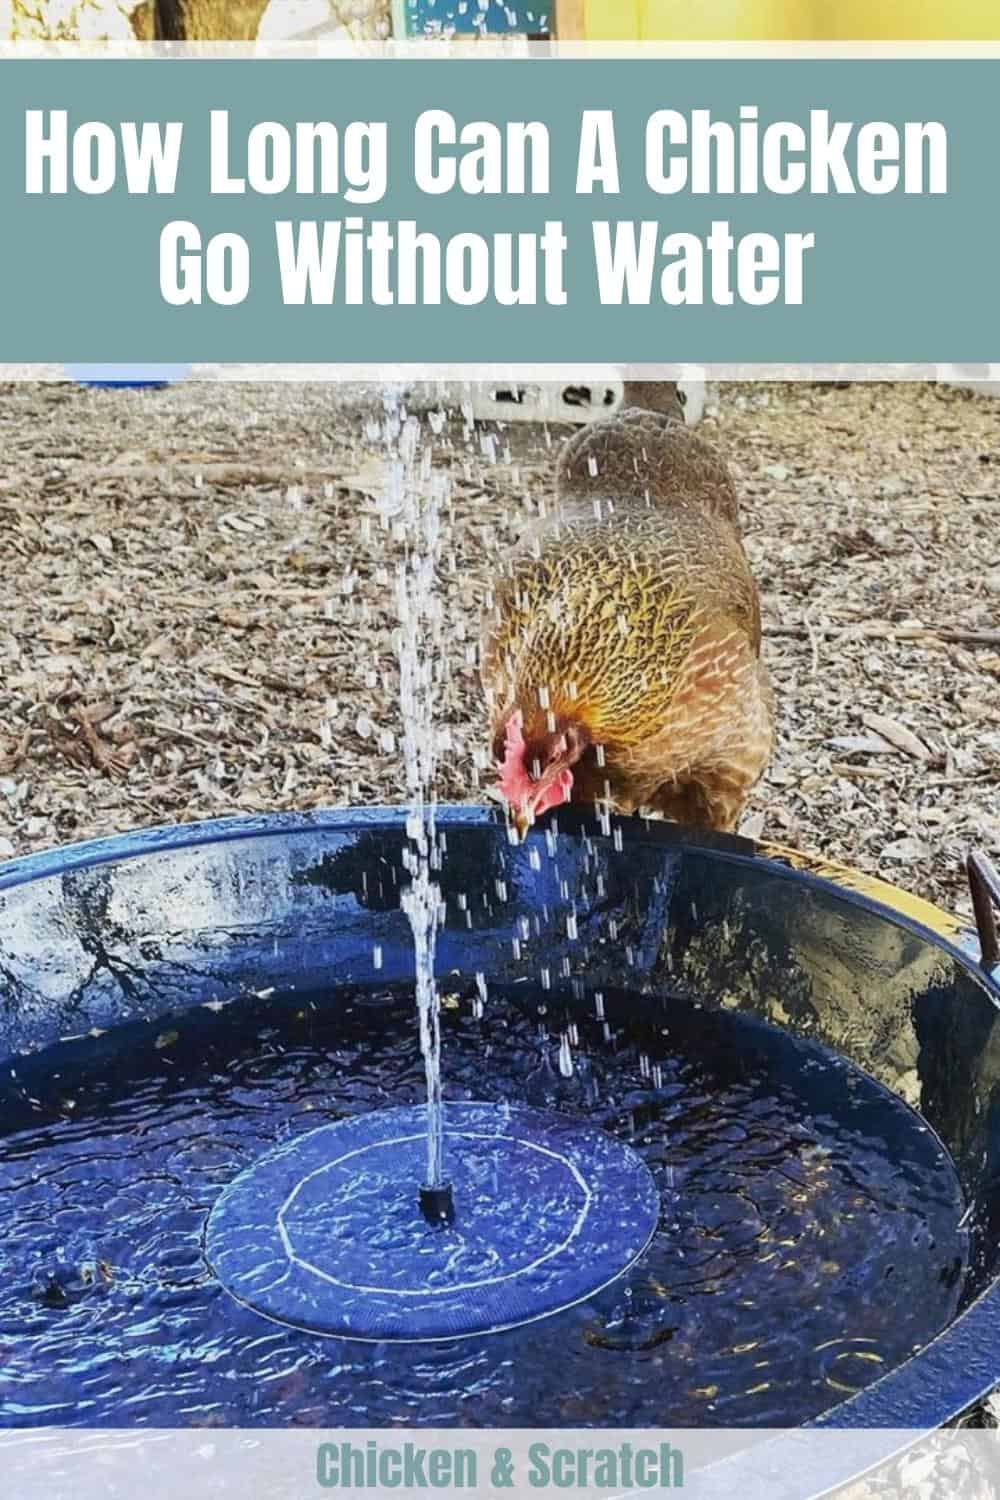 How Long Can A Chicken Go Without Water